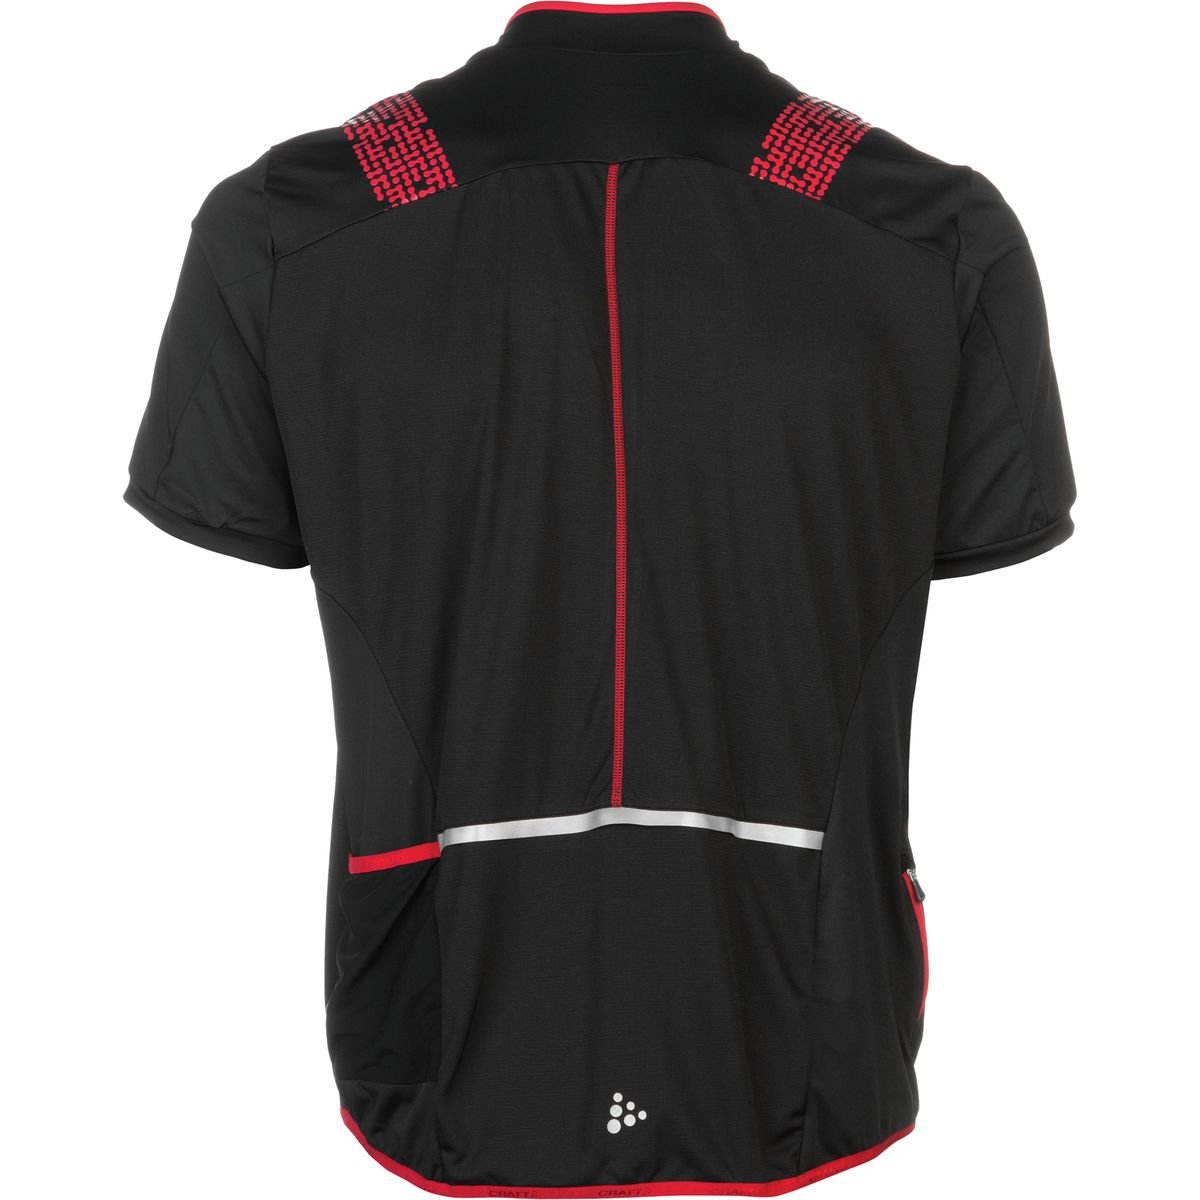 Craft Sportswear Mens Free Bike Cycling Full Zip Short Sleeve Reflective Jersey with Pockets protective//riding//compression//cooling Craft Sports Apparel 1903295